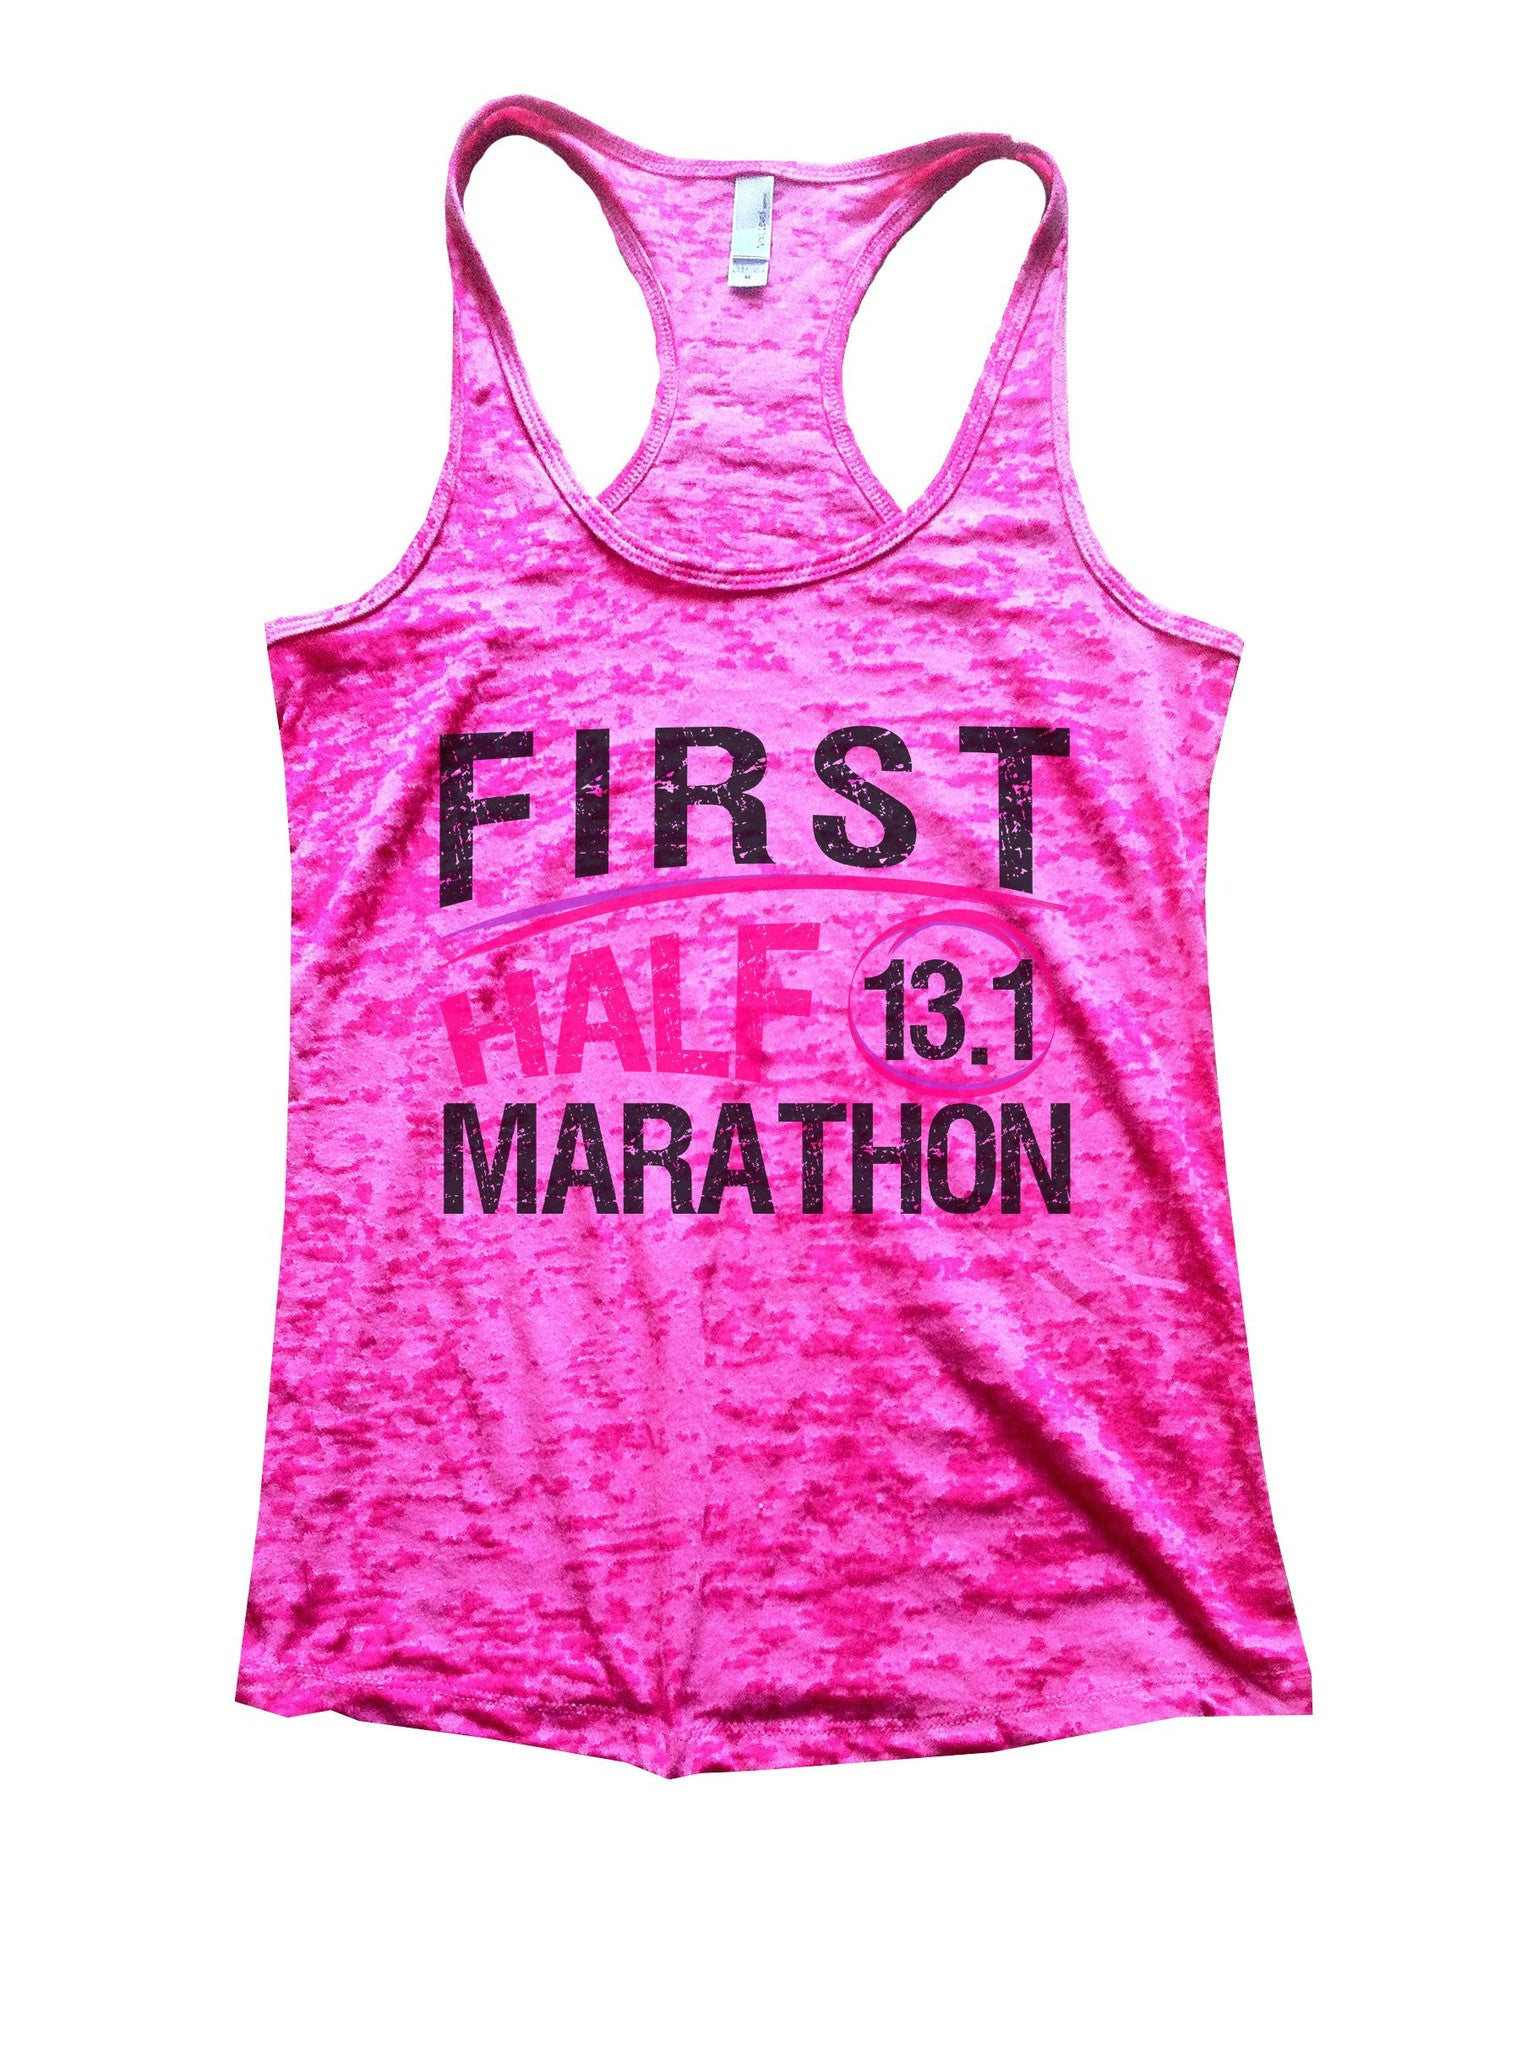 First Half 13.1 Marathon Burnout Tank Top By BurnoutTankTops.com - 1035 - Funny Shirts Tank Tops Burnouts and Triblends  - 5